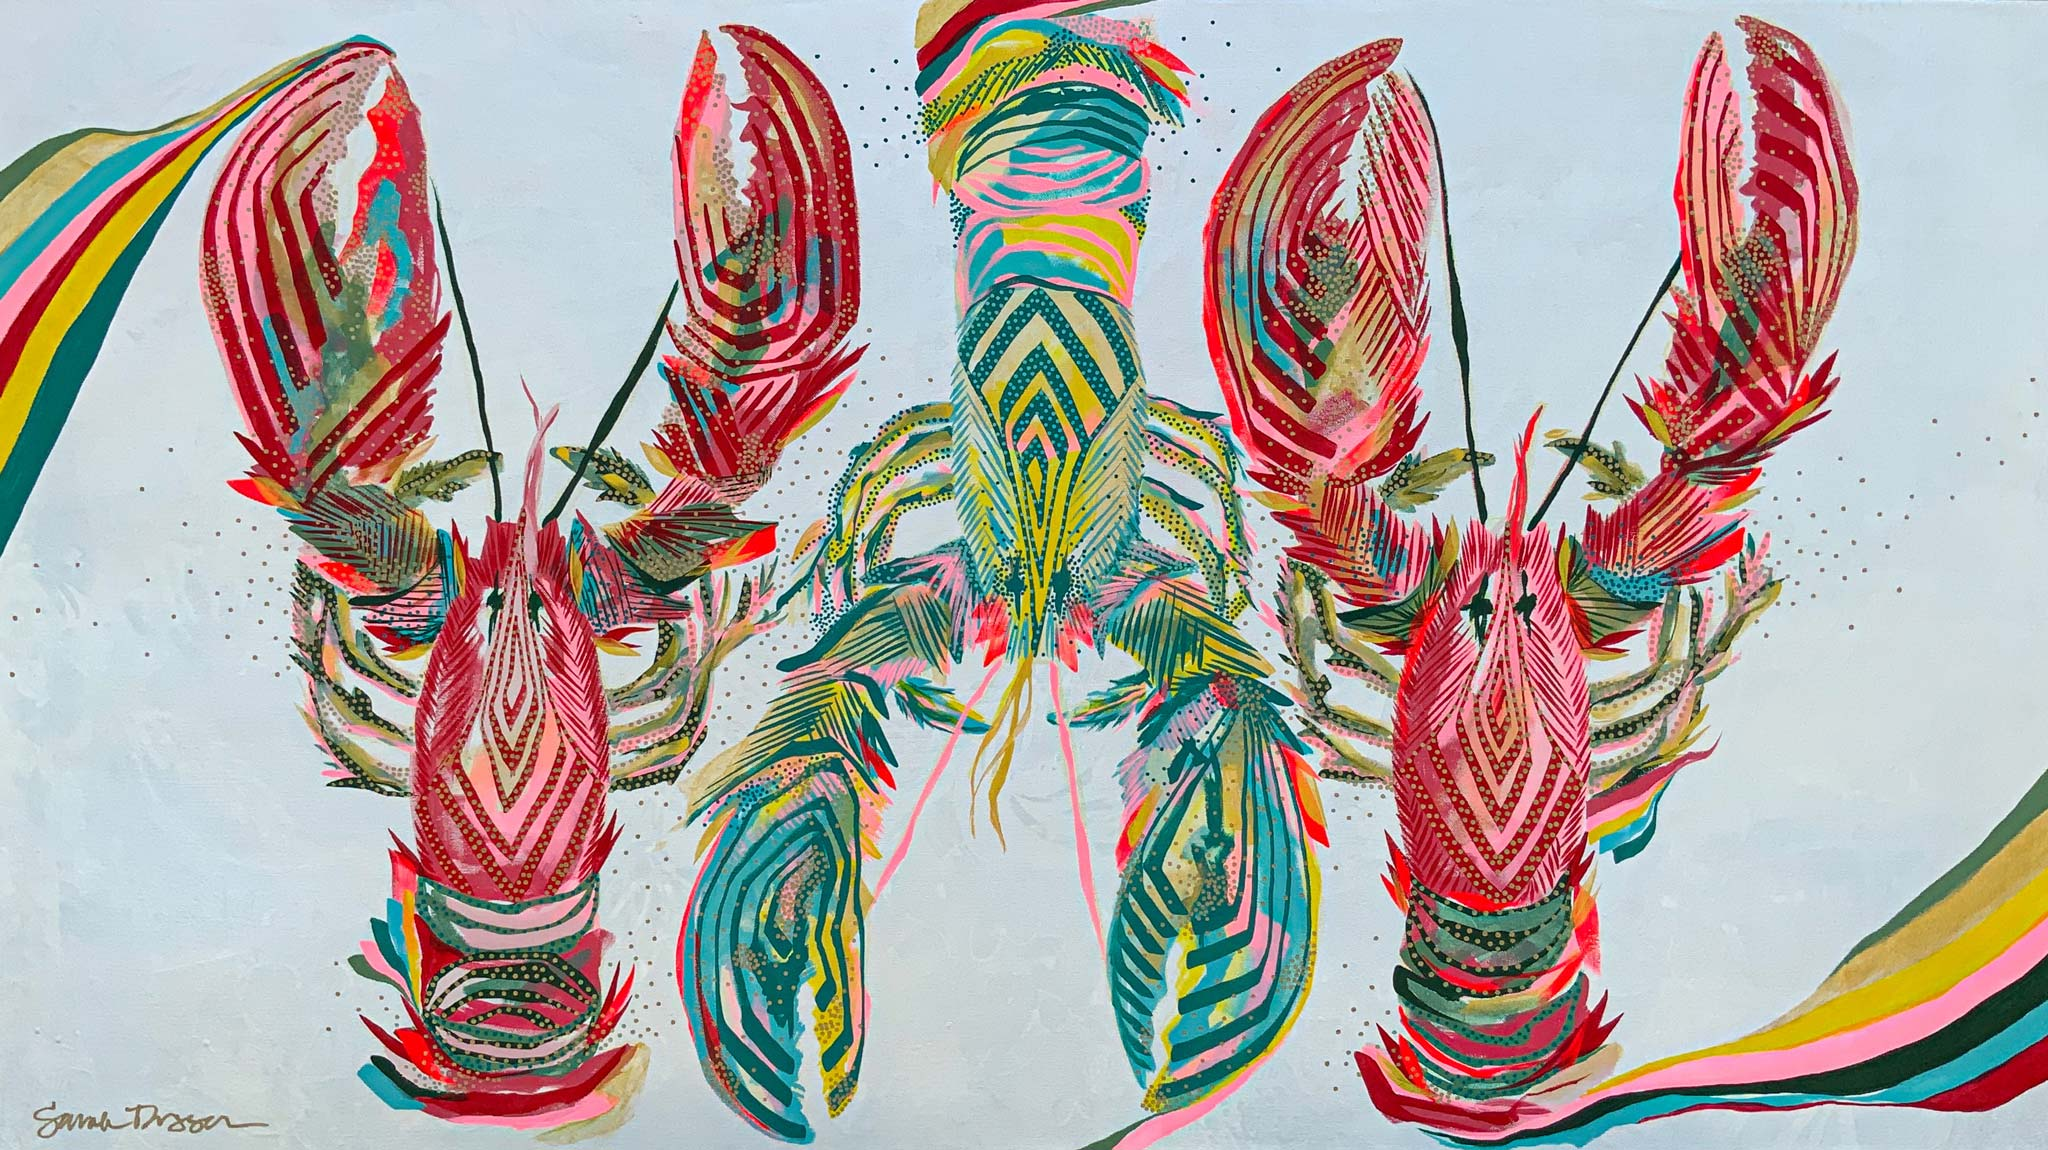 acrylic, lobster, pink, teal, red, pearl ground, bold lines, layered lines, graphic style